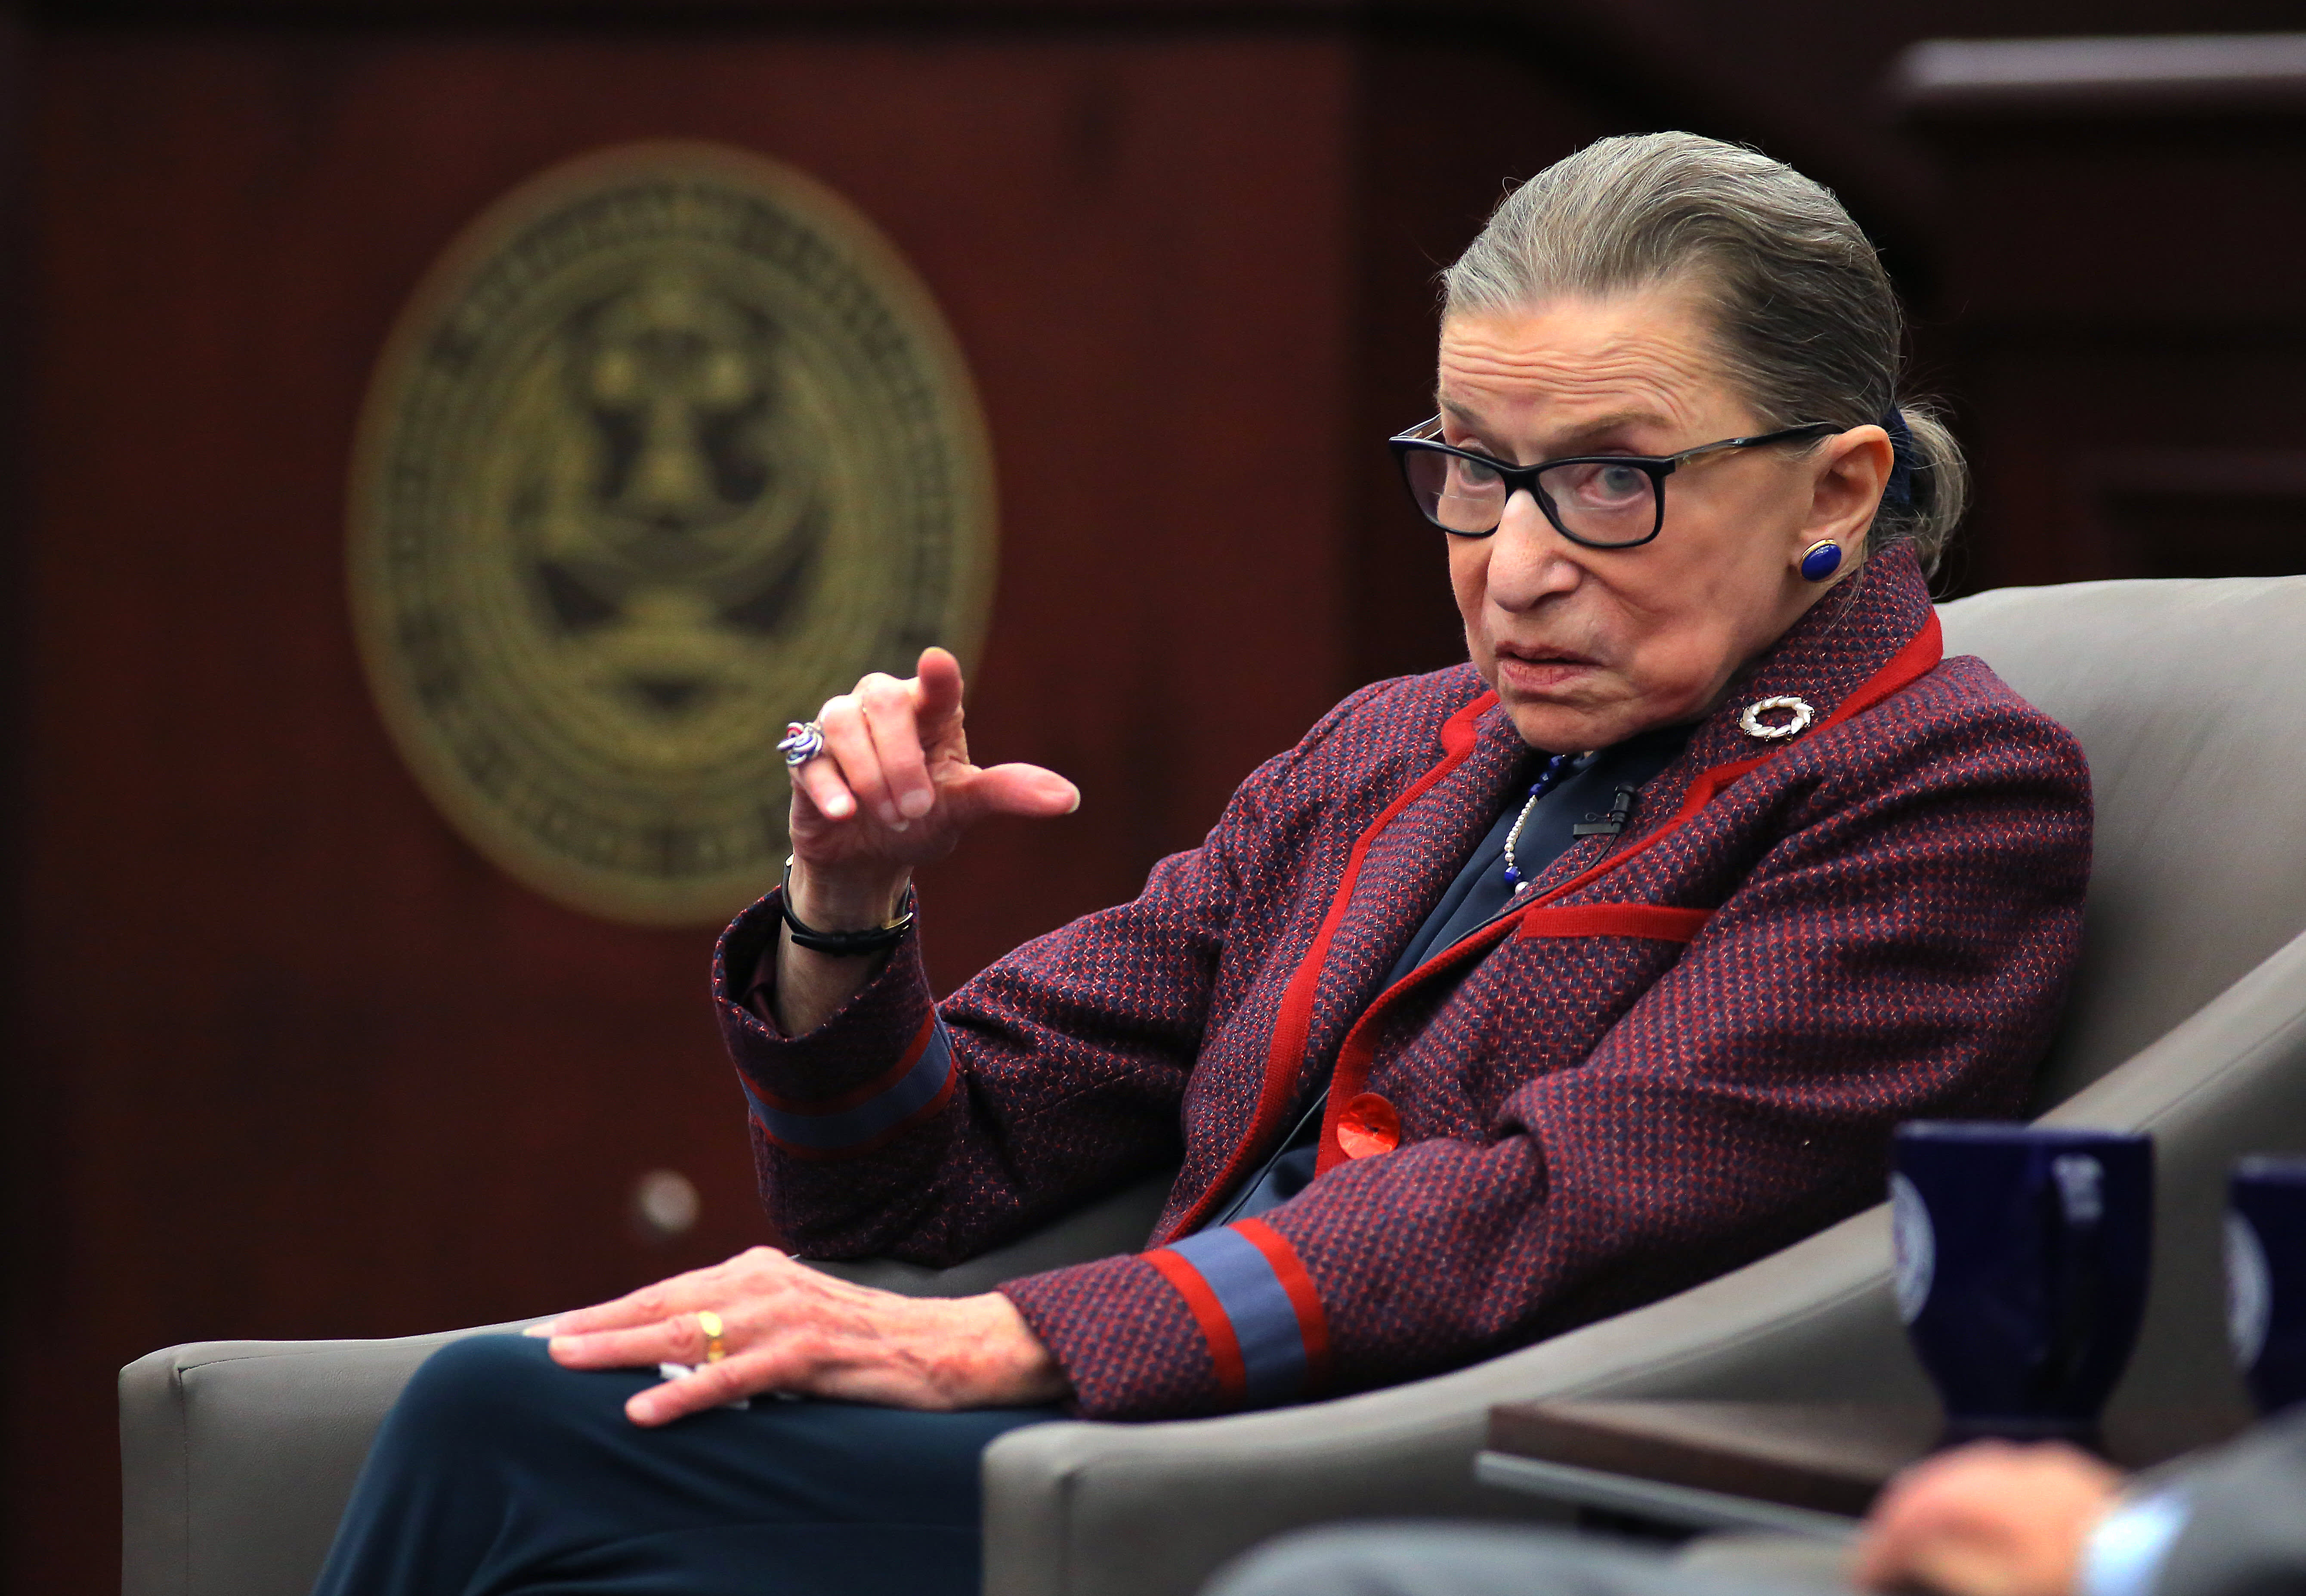 With Ruth Bader Ginsburg's health in the spotlight, attention turns to abortion foe waiting in the wings